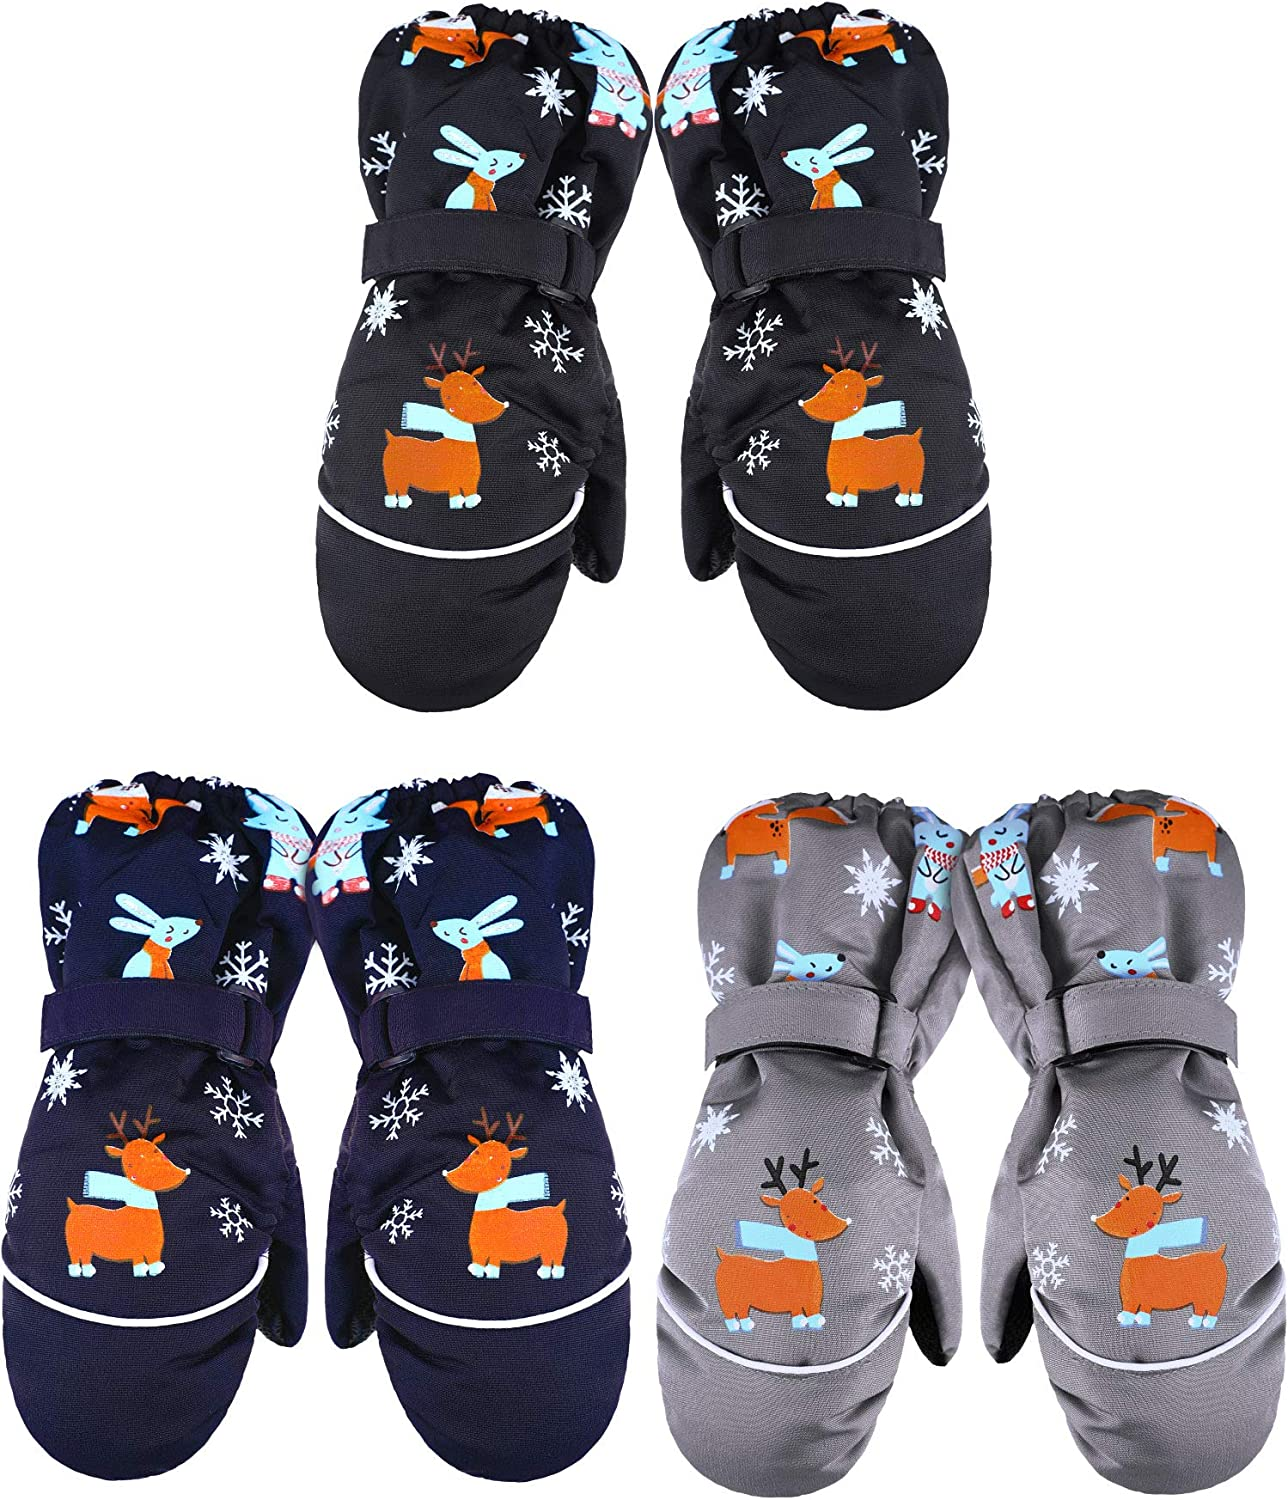 3 Pairs Kids Thick Snow Mittens Baby Toddler Waterproof Ski Gloves Winter Warm Gloves for Boys Girls : Sports & Outdoors